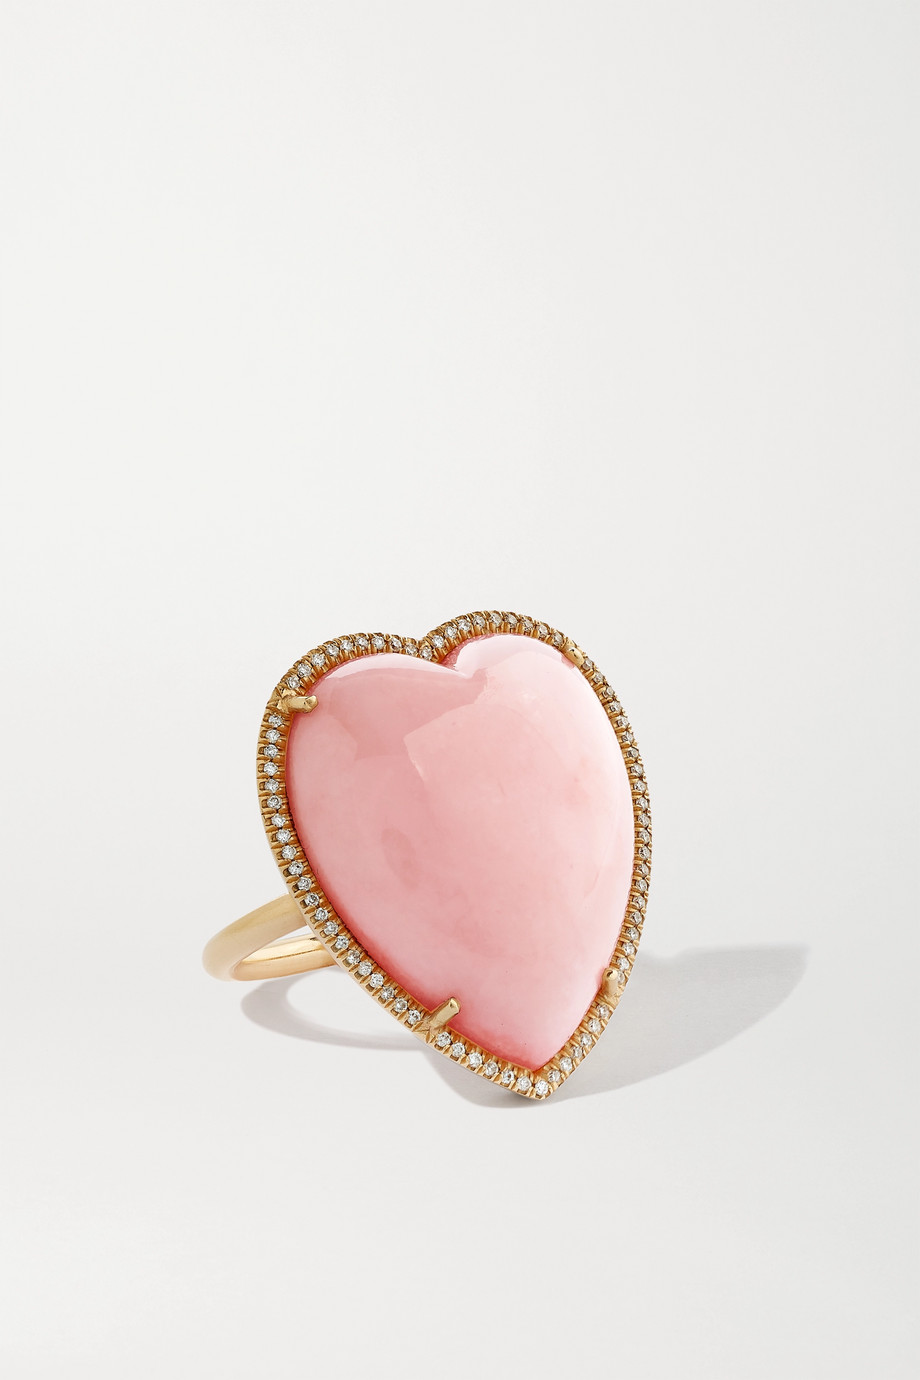 Irene Neuwirth Bague en or rose 18 carats, opale et diamants Love